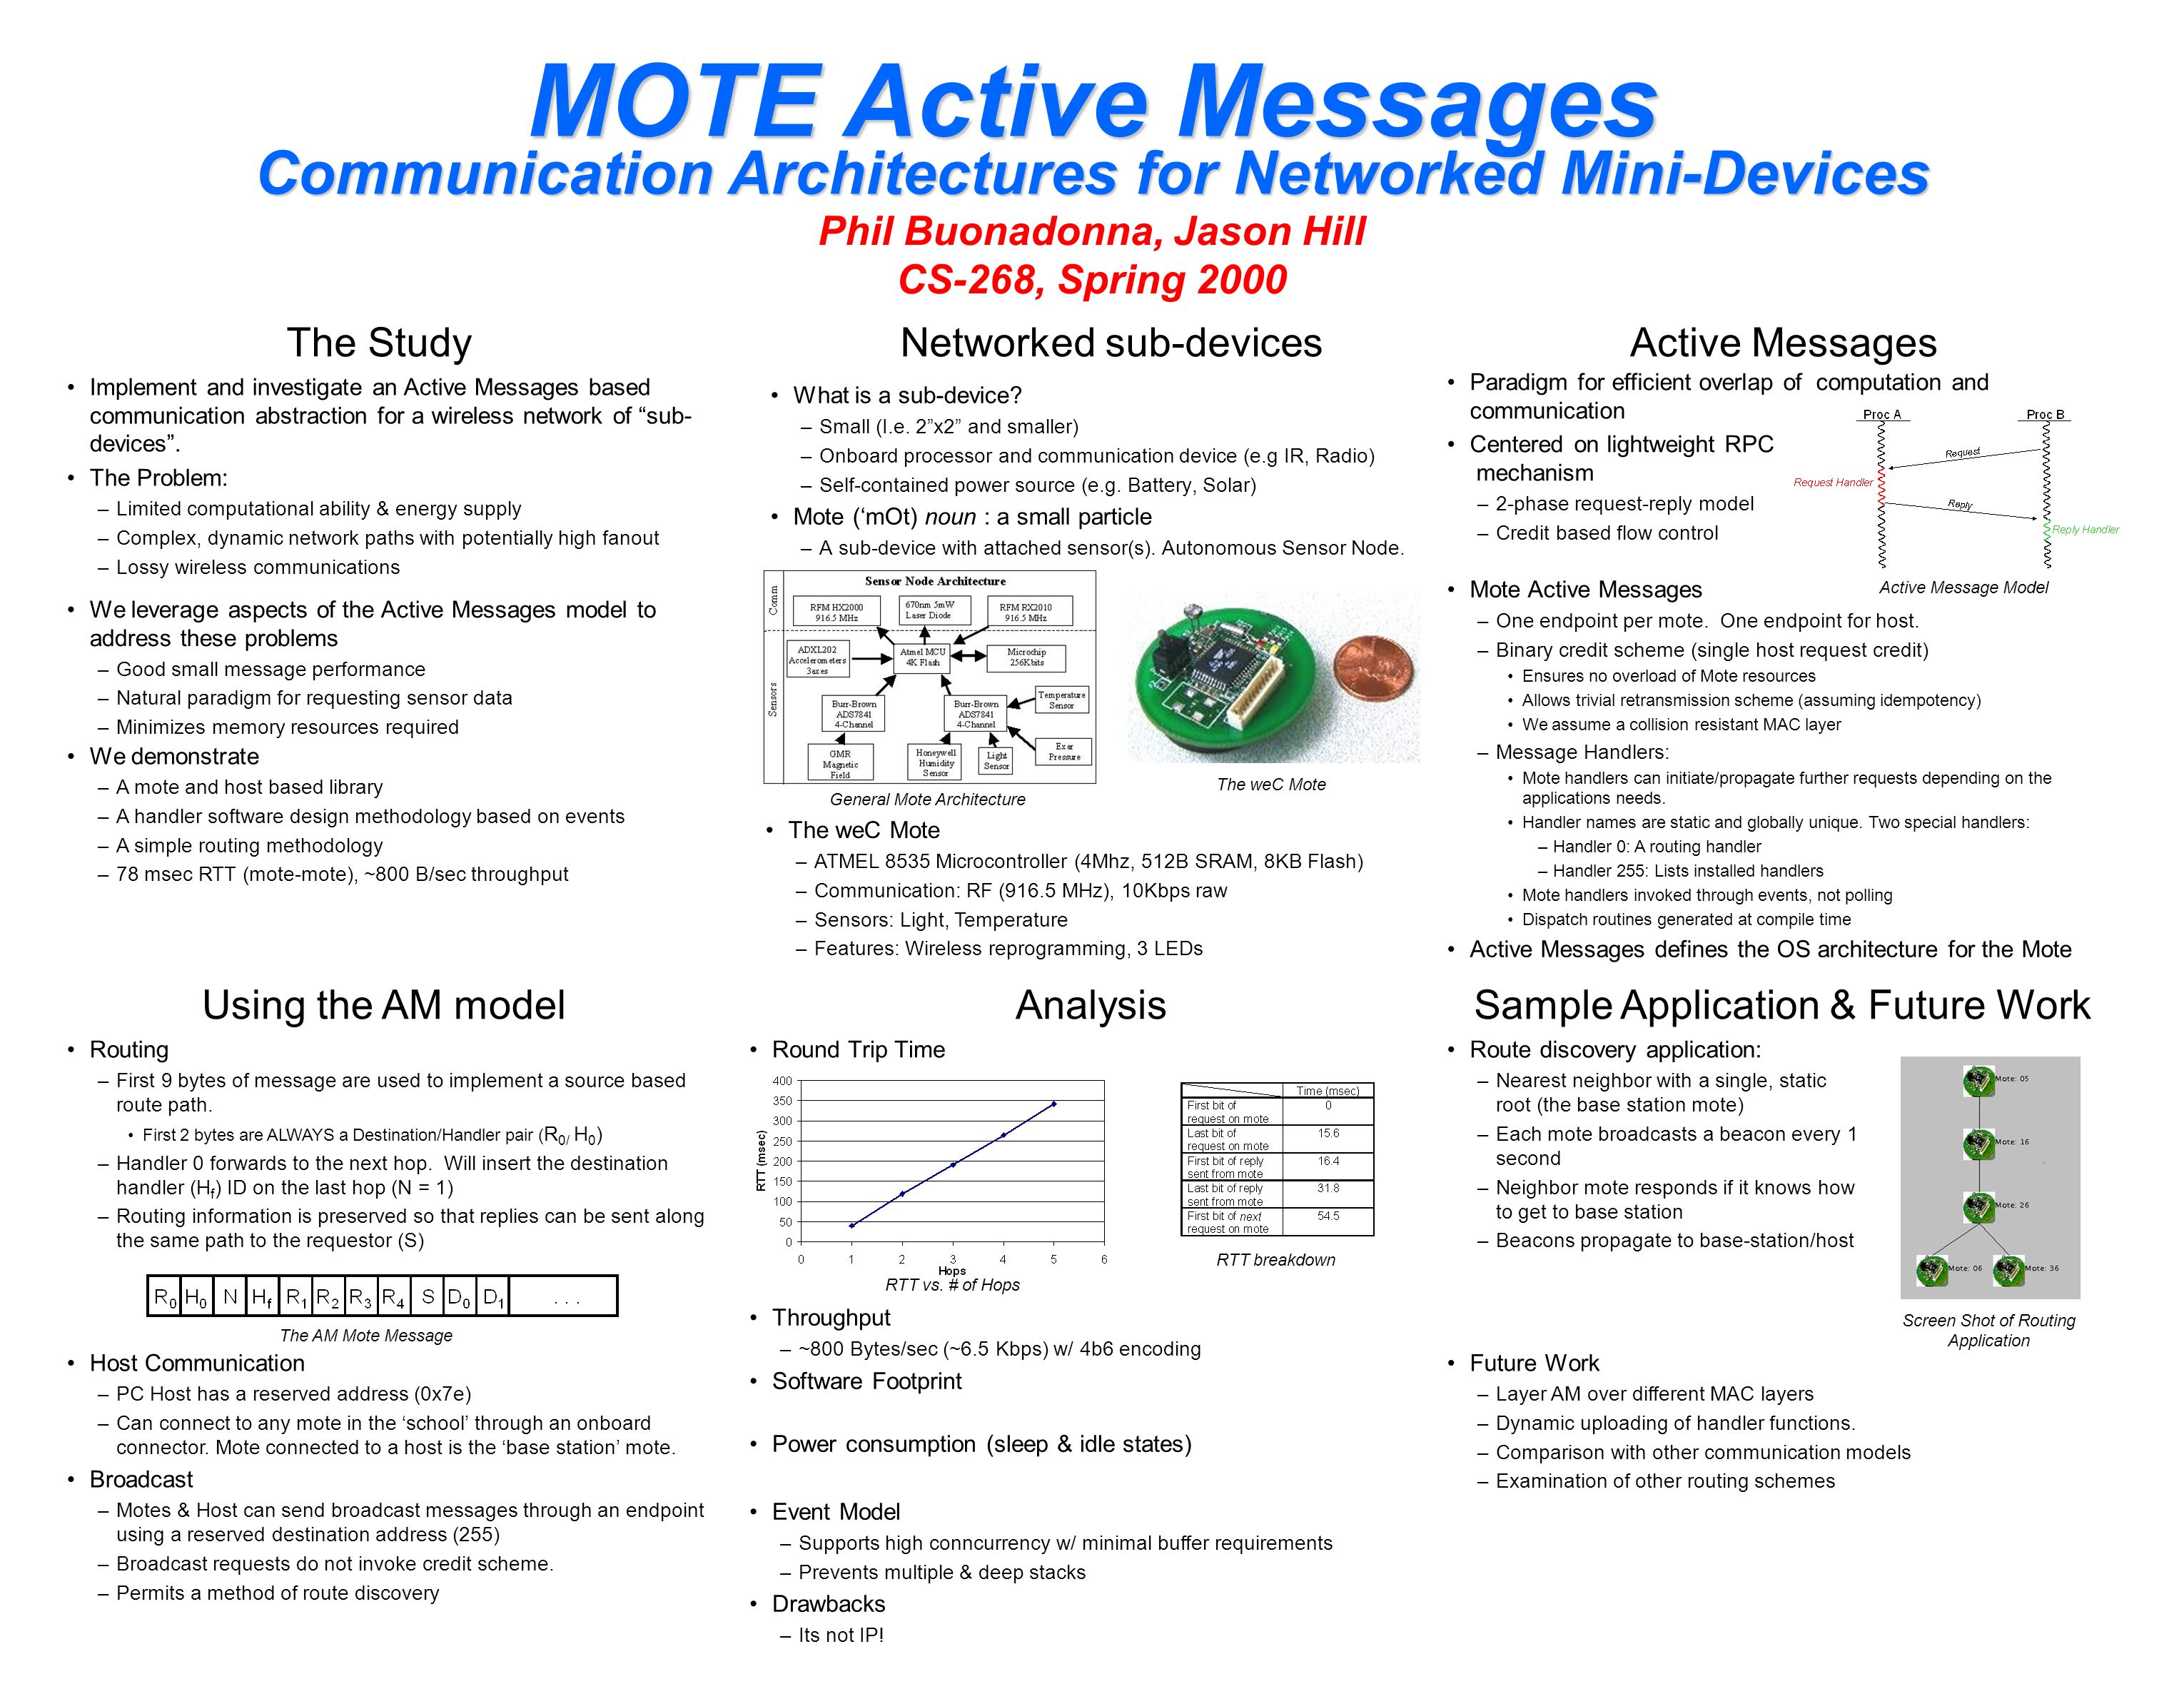 Phil Buonadonna, Jason Hill CS-268, Spring 2000 MOTE Active Messages Communication Architectures for Networked Mini-Devices Networked sub-devicesActiv